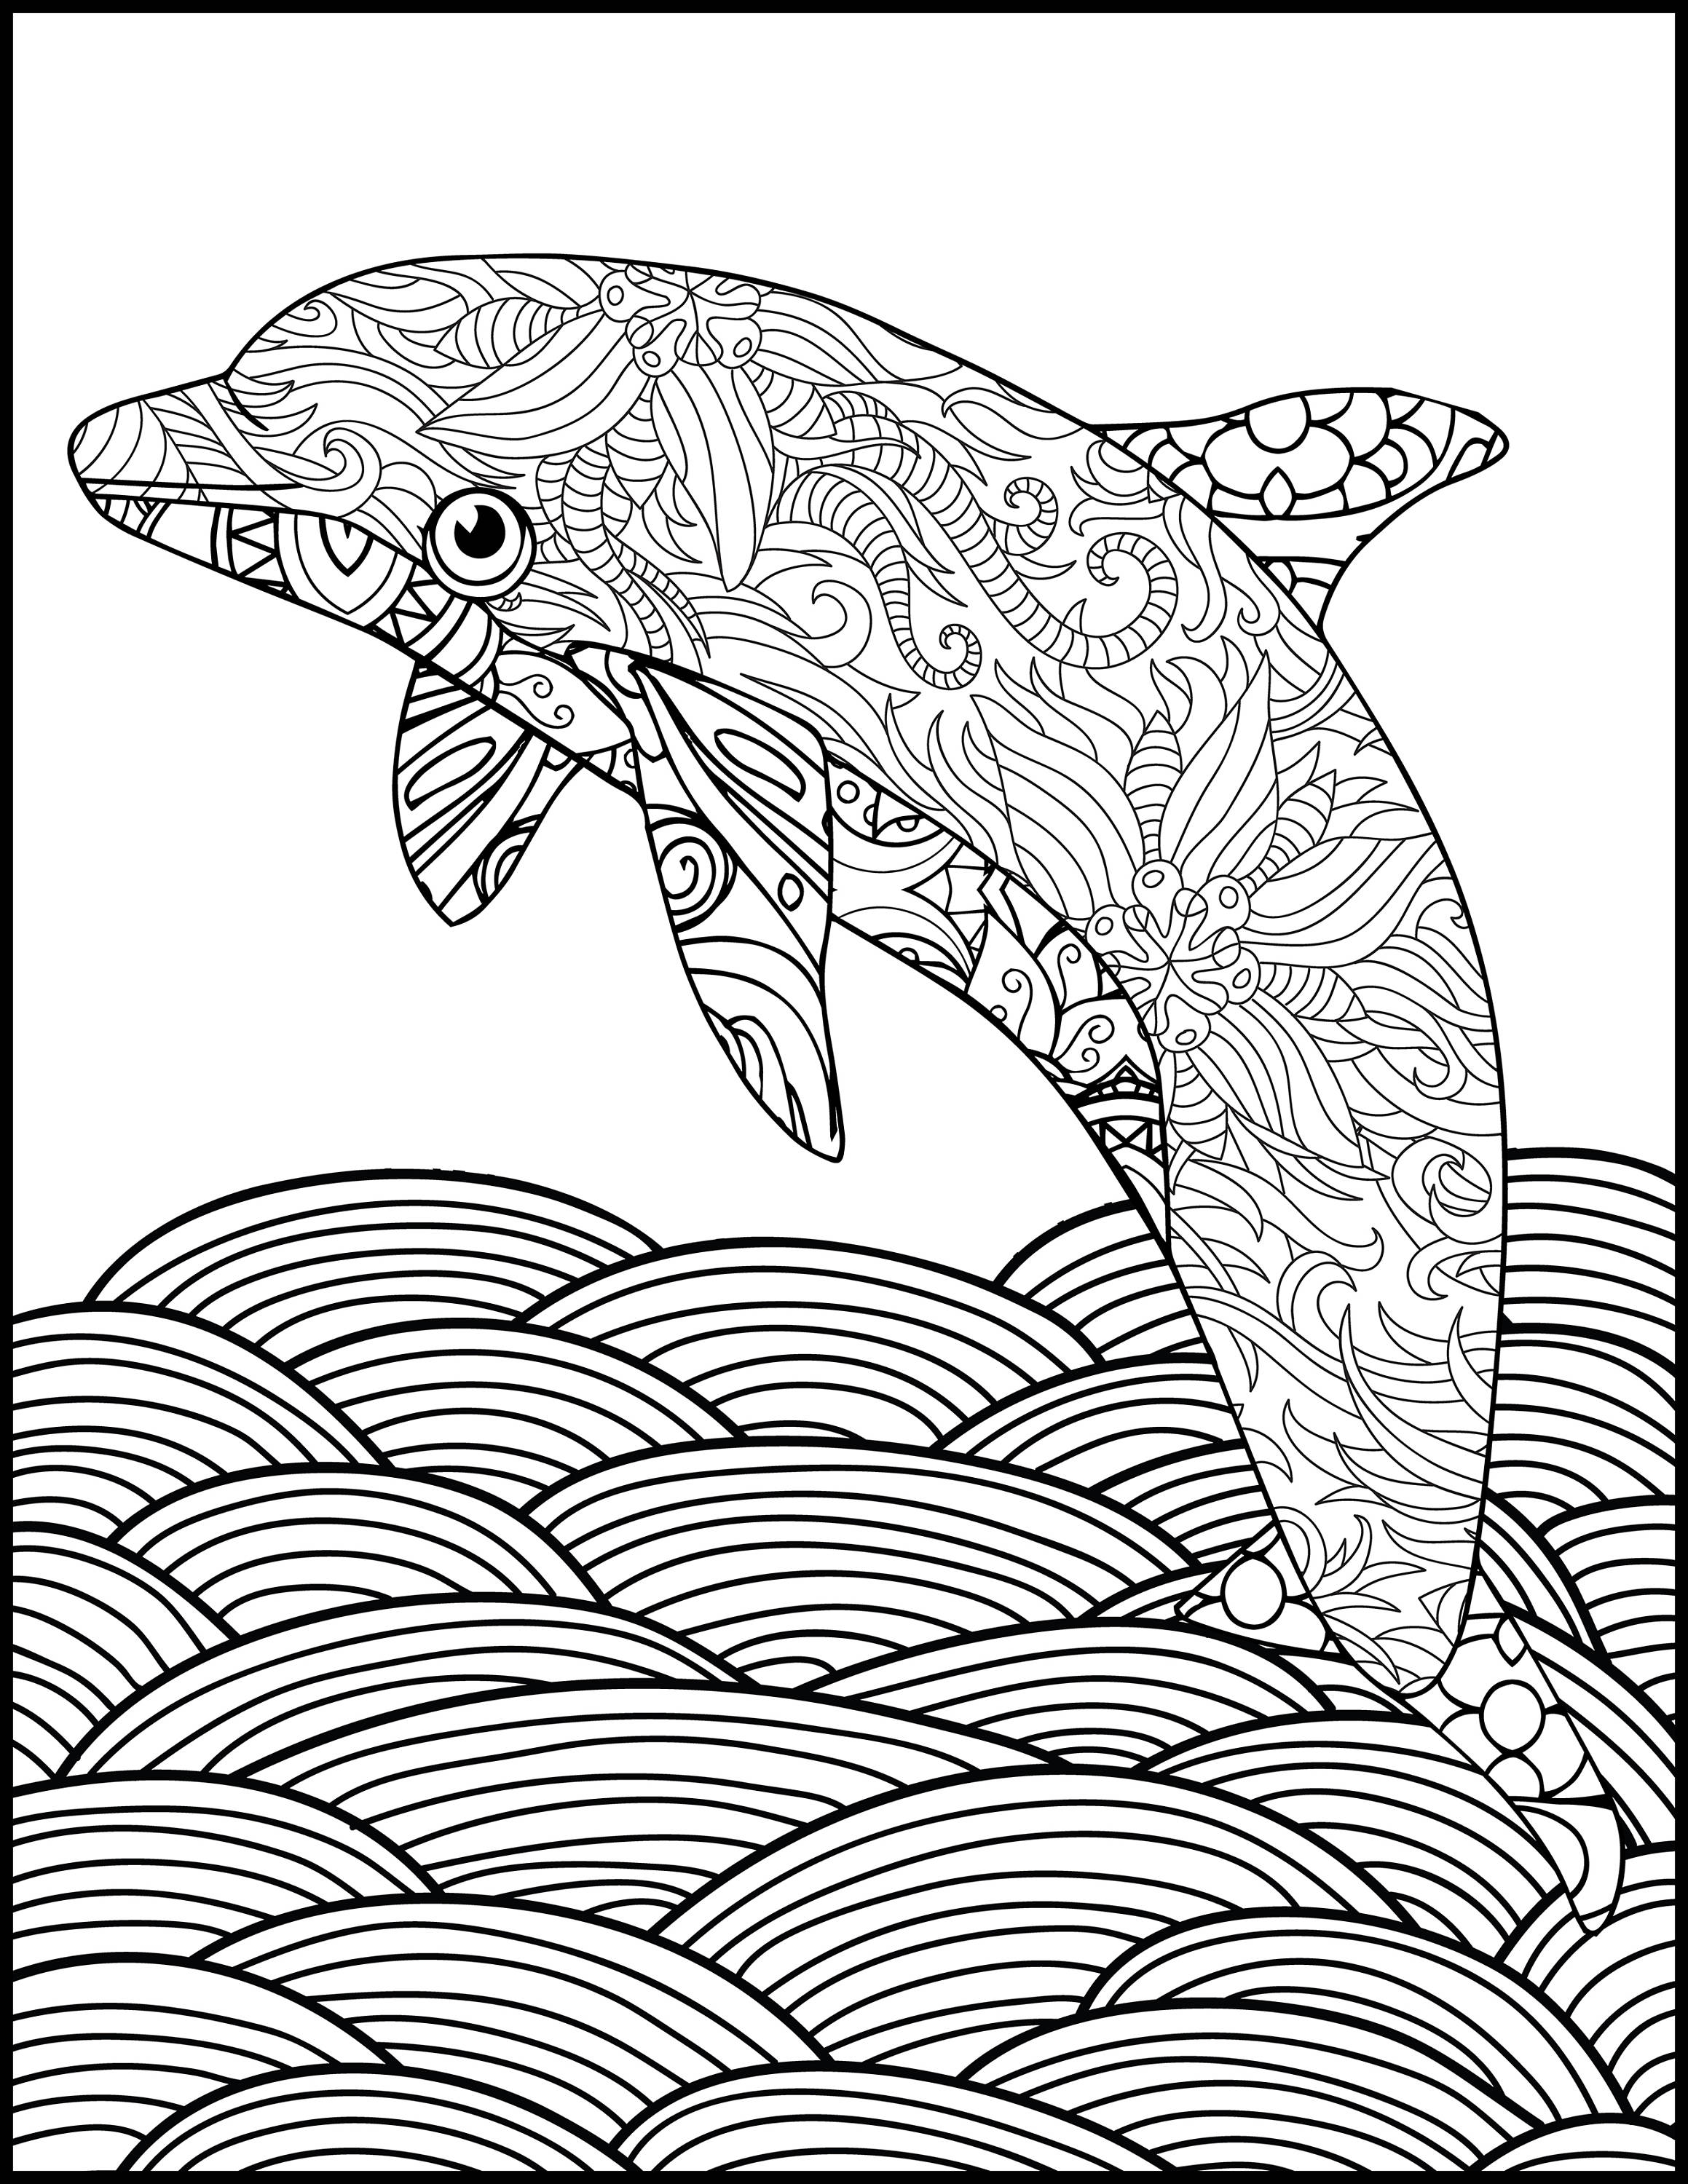 detailed dolphin coloring pages dolphin coloring pages free for kids gtgt disney coloring pages dolphin coloring detailed pages